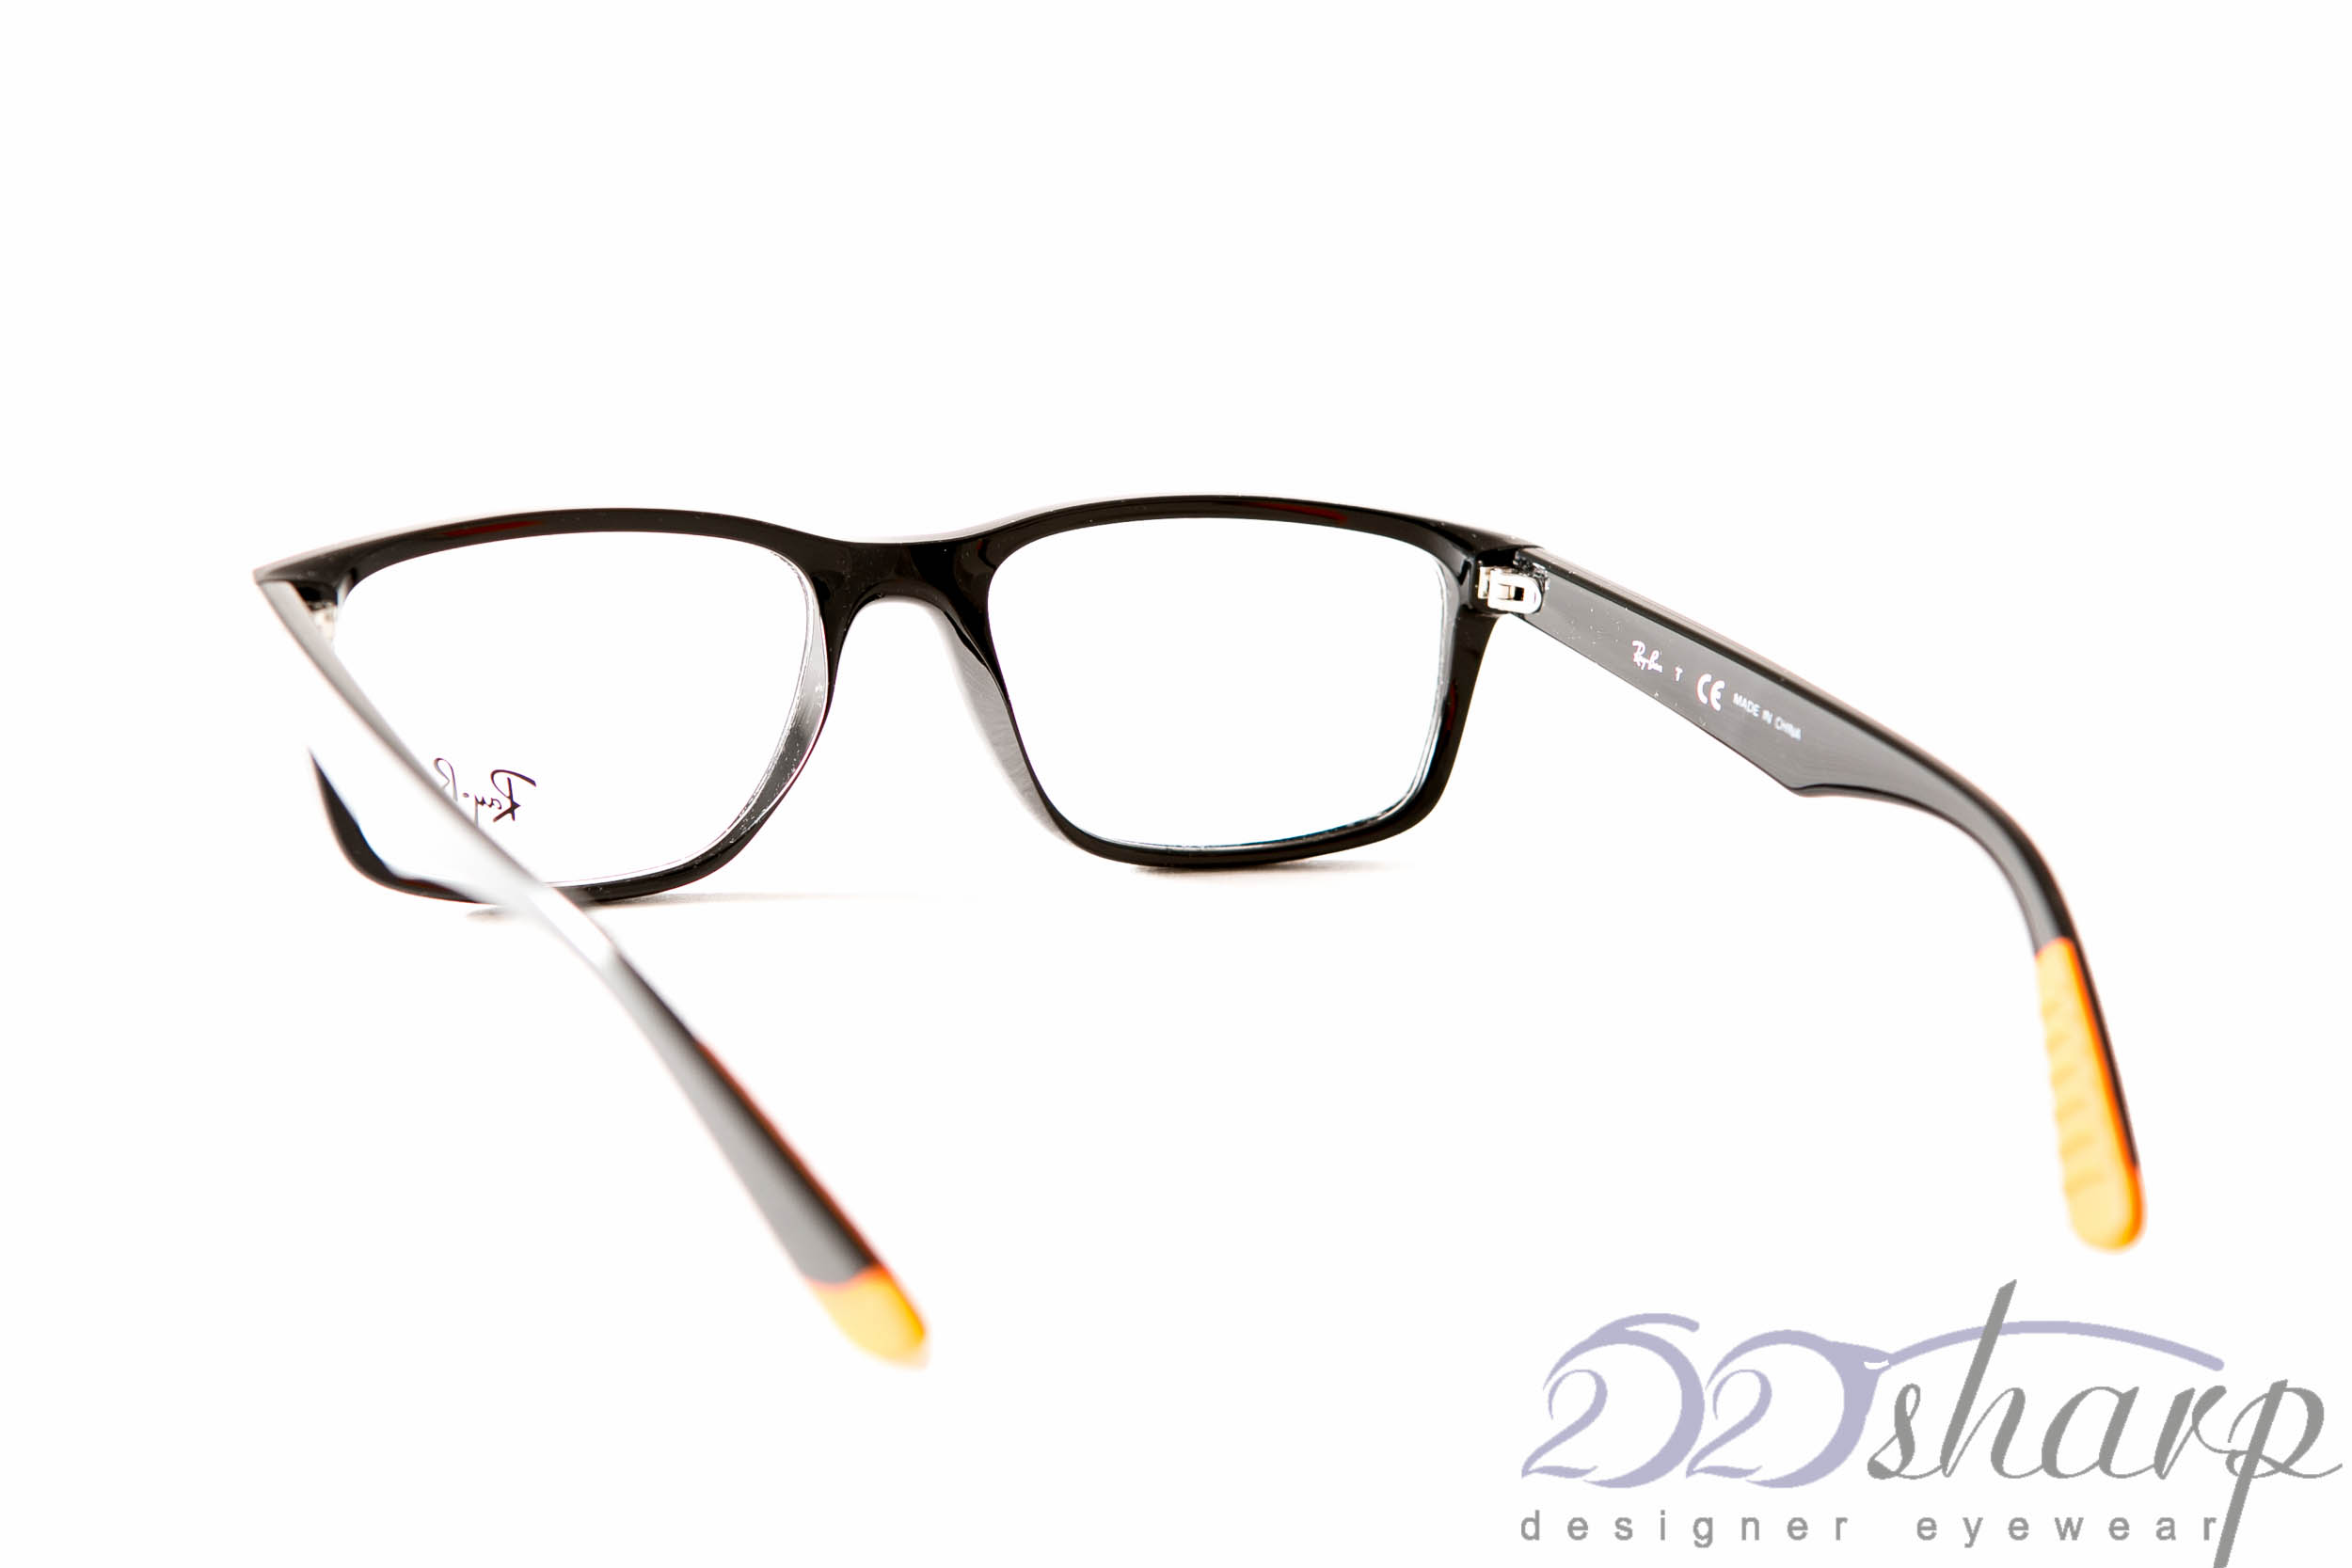 4afd971c0d Details about Ray Ban Eyeglasses-RB 7063 5417